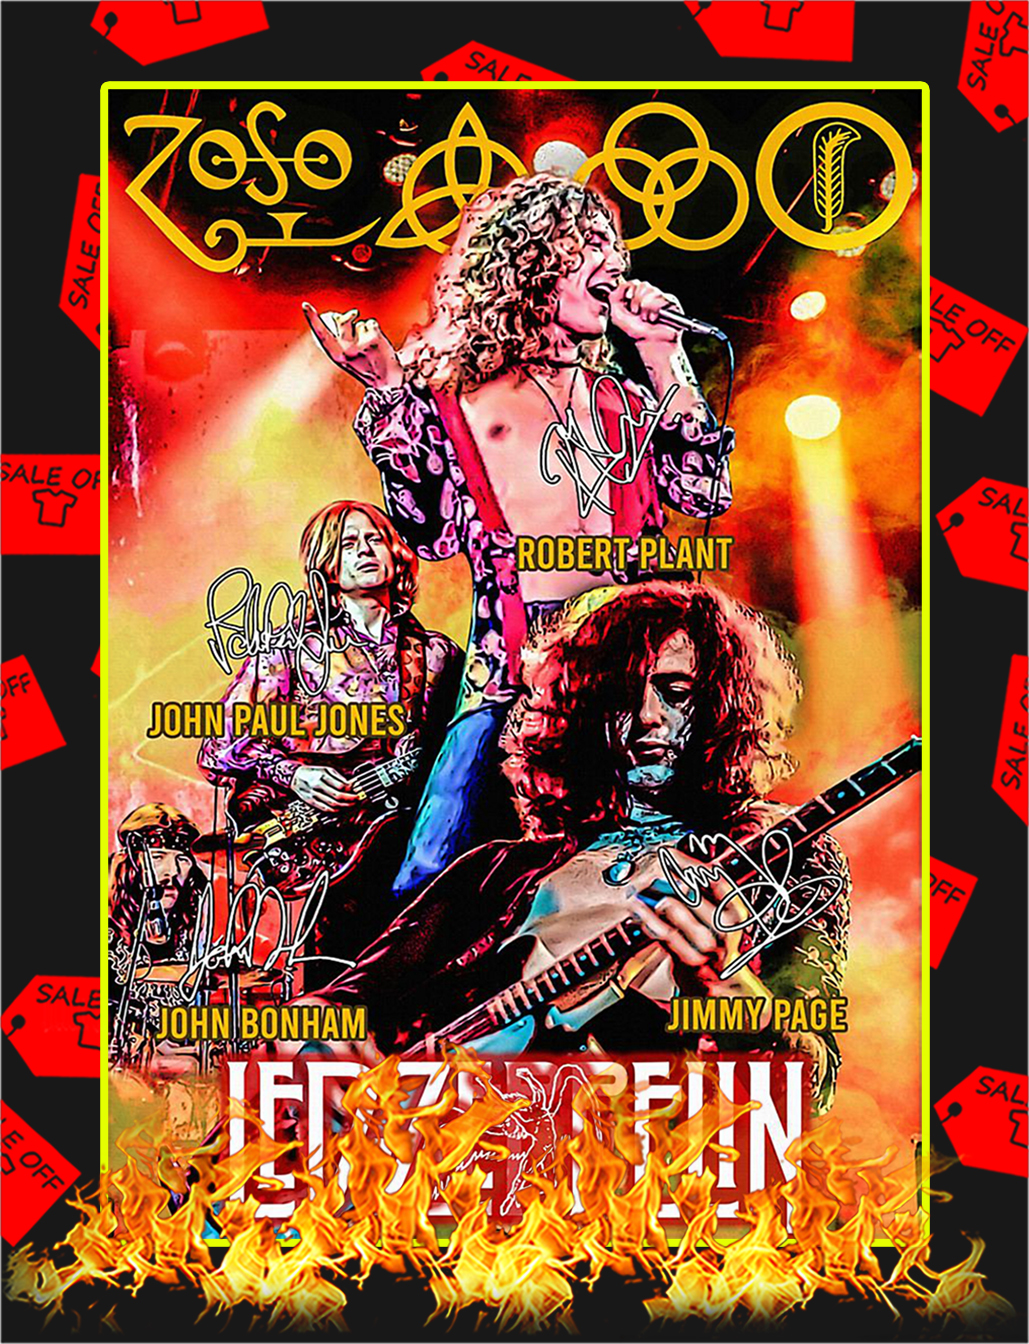 Led Zeppelin Signature Poster - A3Led Zeppelin Signature Poster - A3